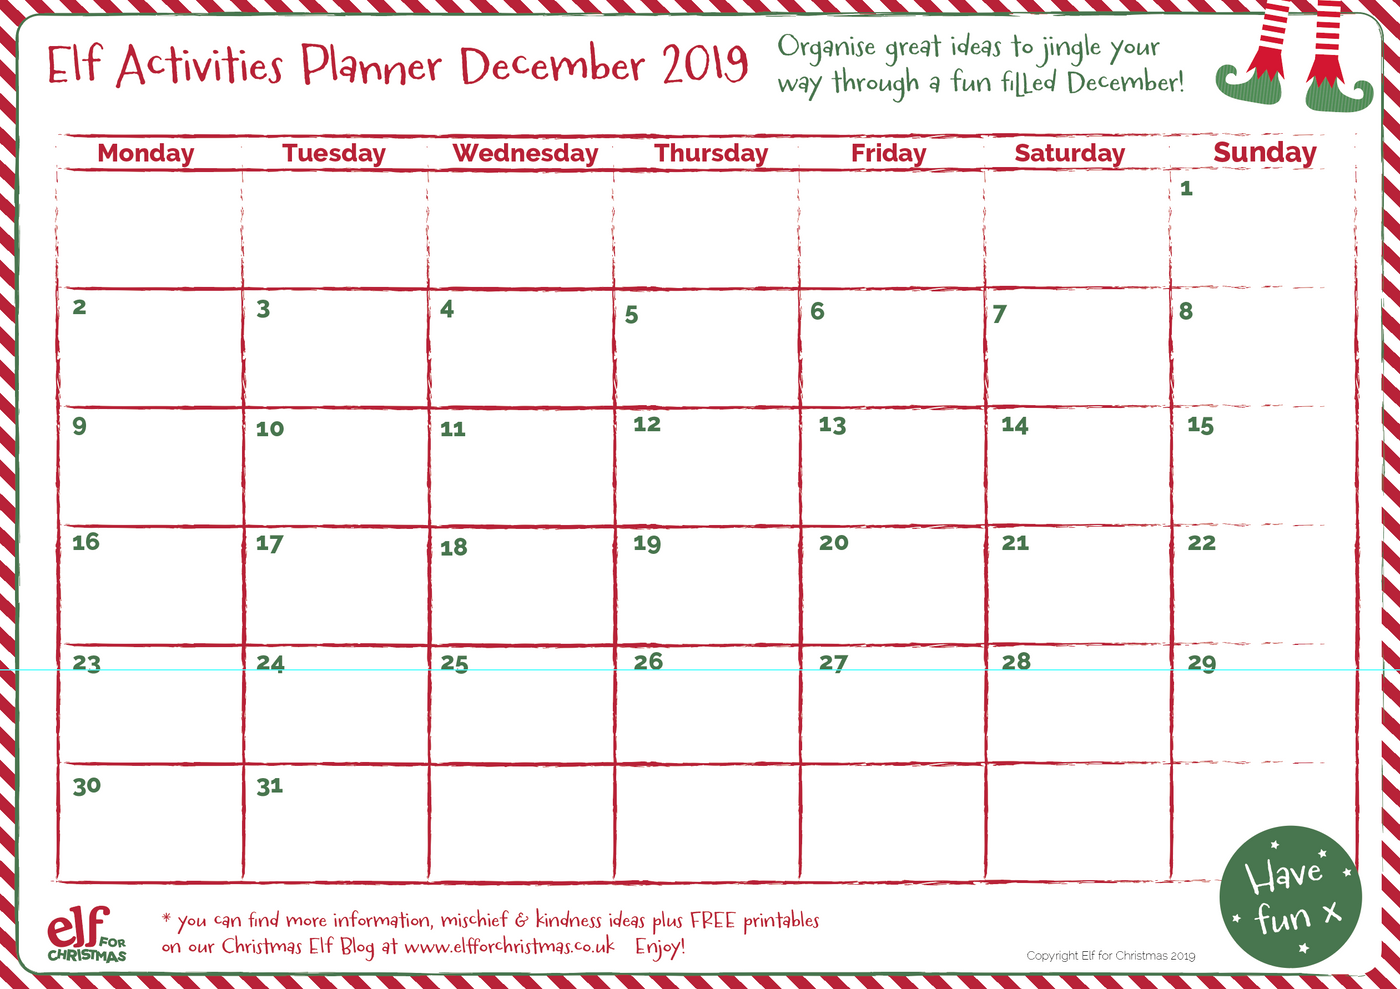 2019 Elf Antics Planner Printable